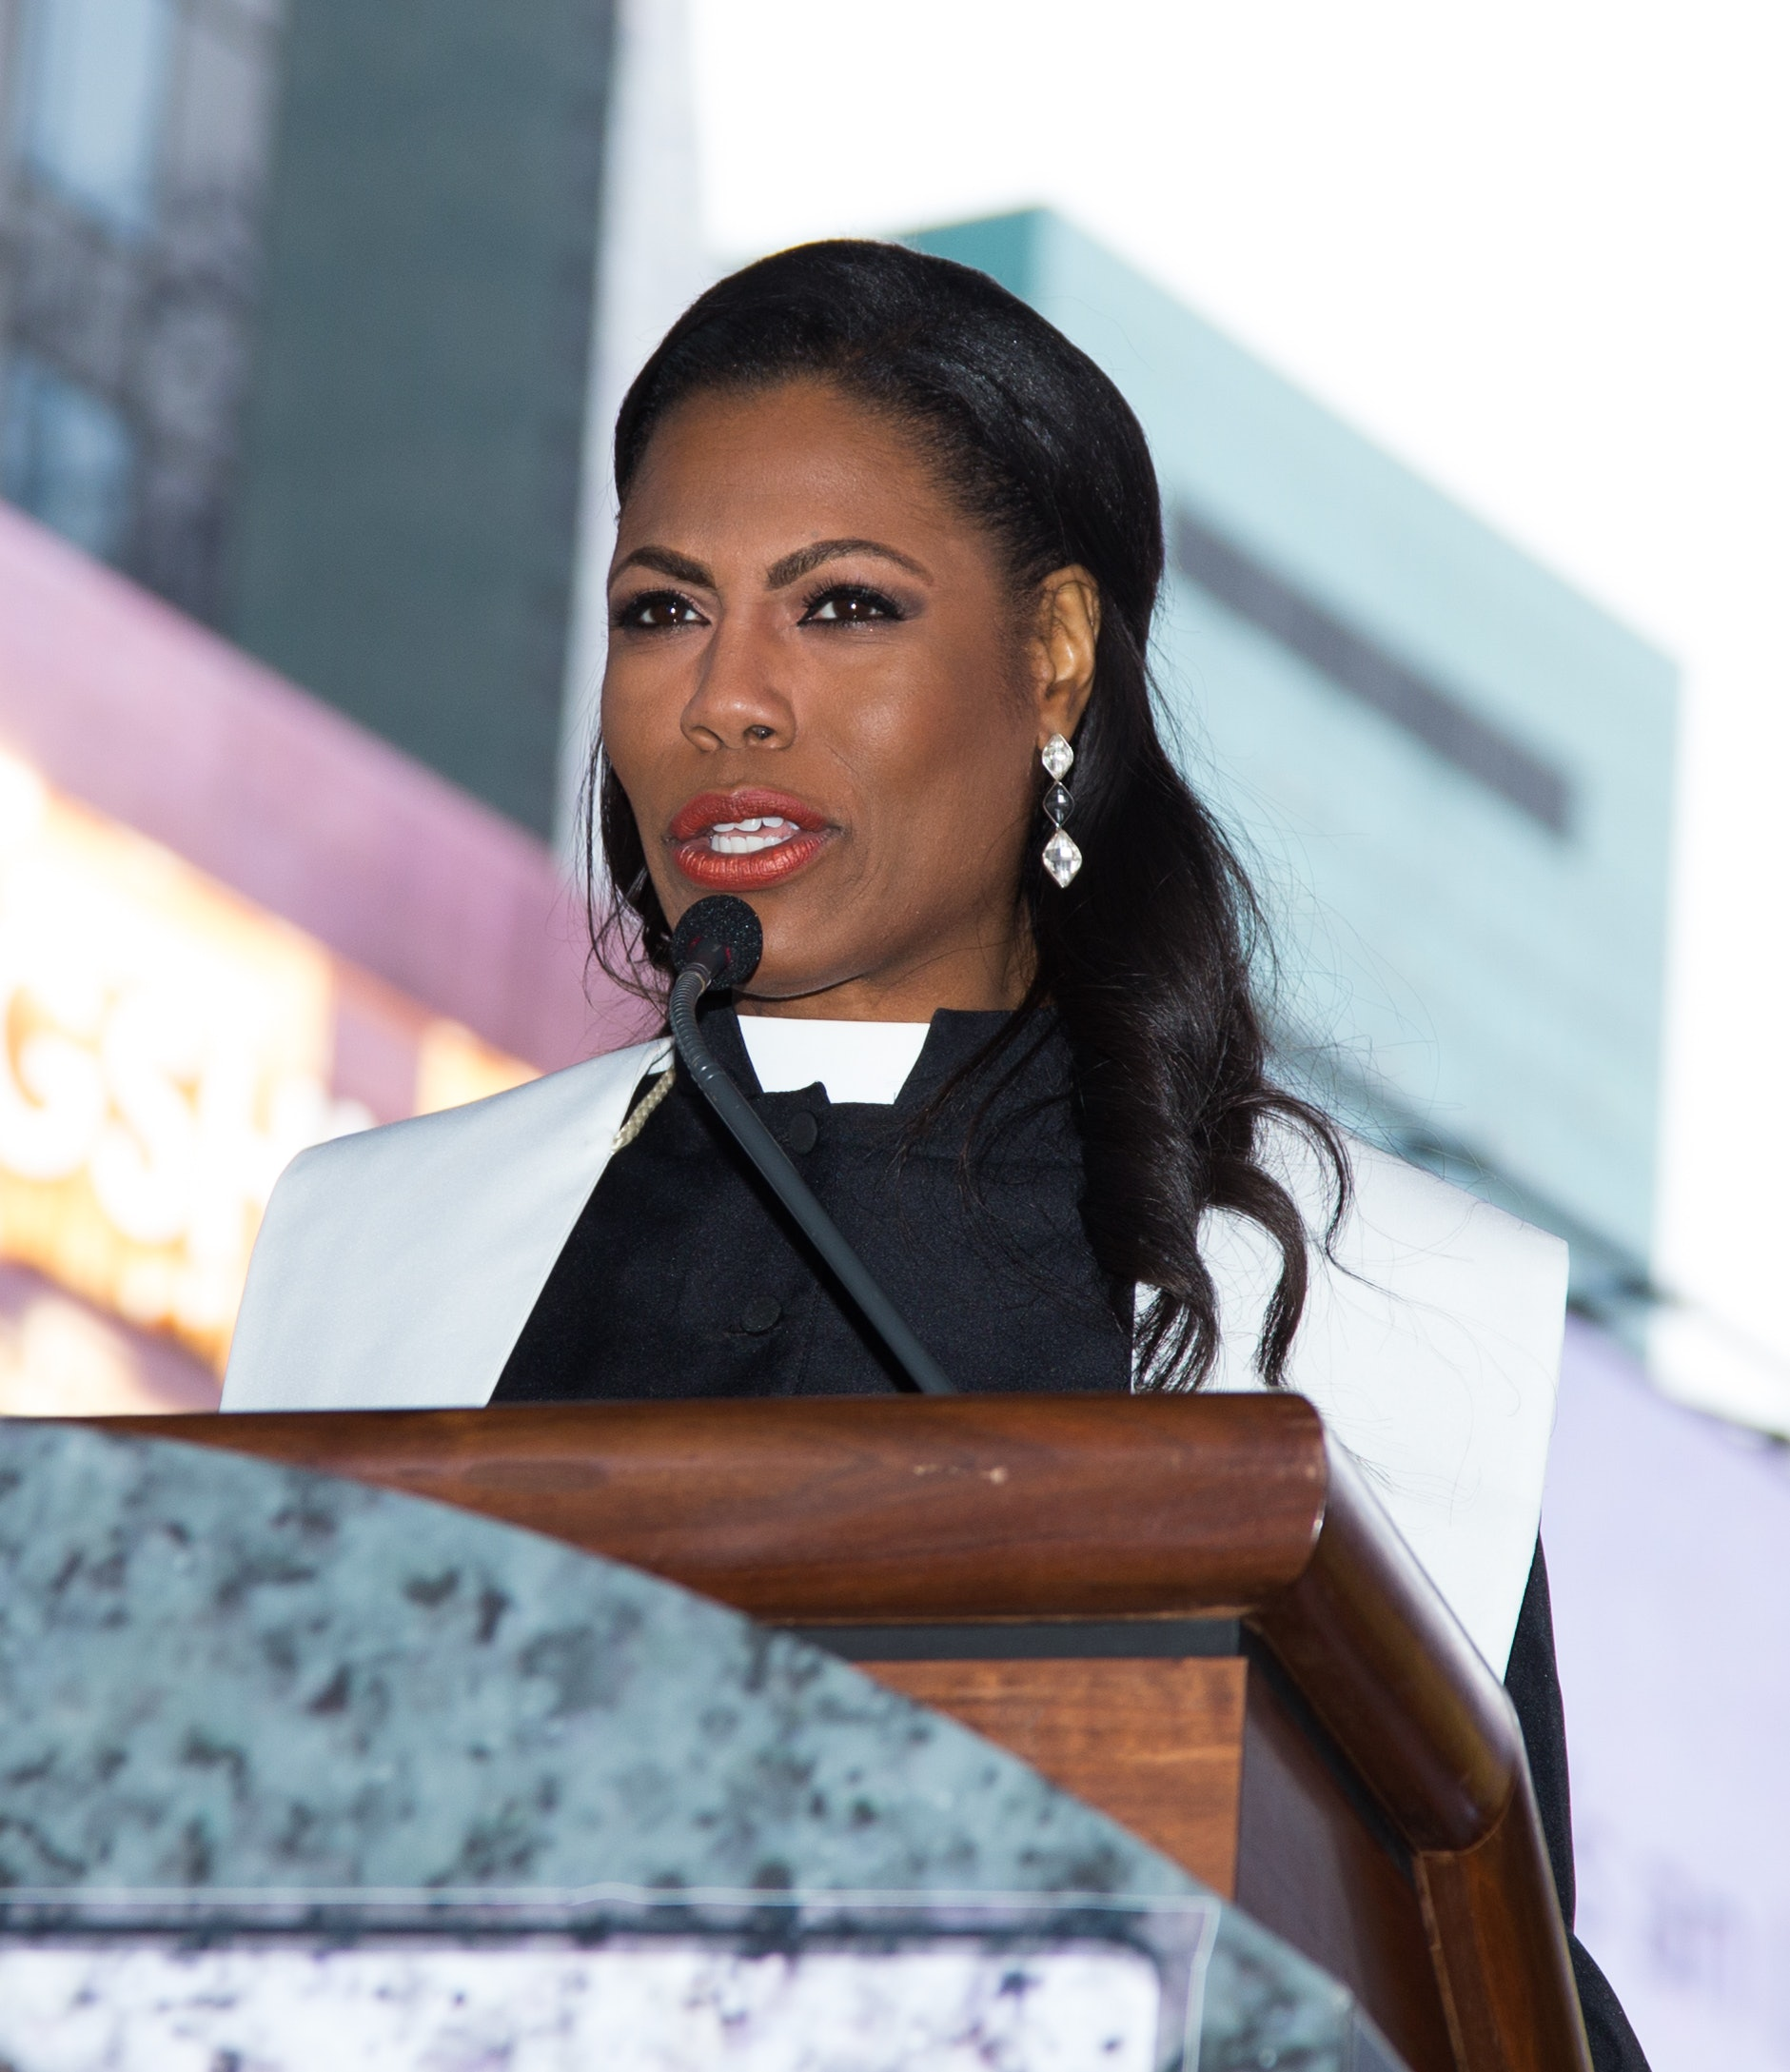 Donald Trump Has Written Concession and Acceptance Speeches, Adviser Omarosa Manigault Reveals